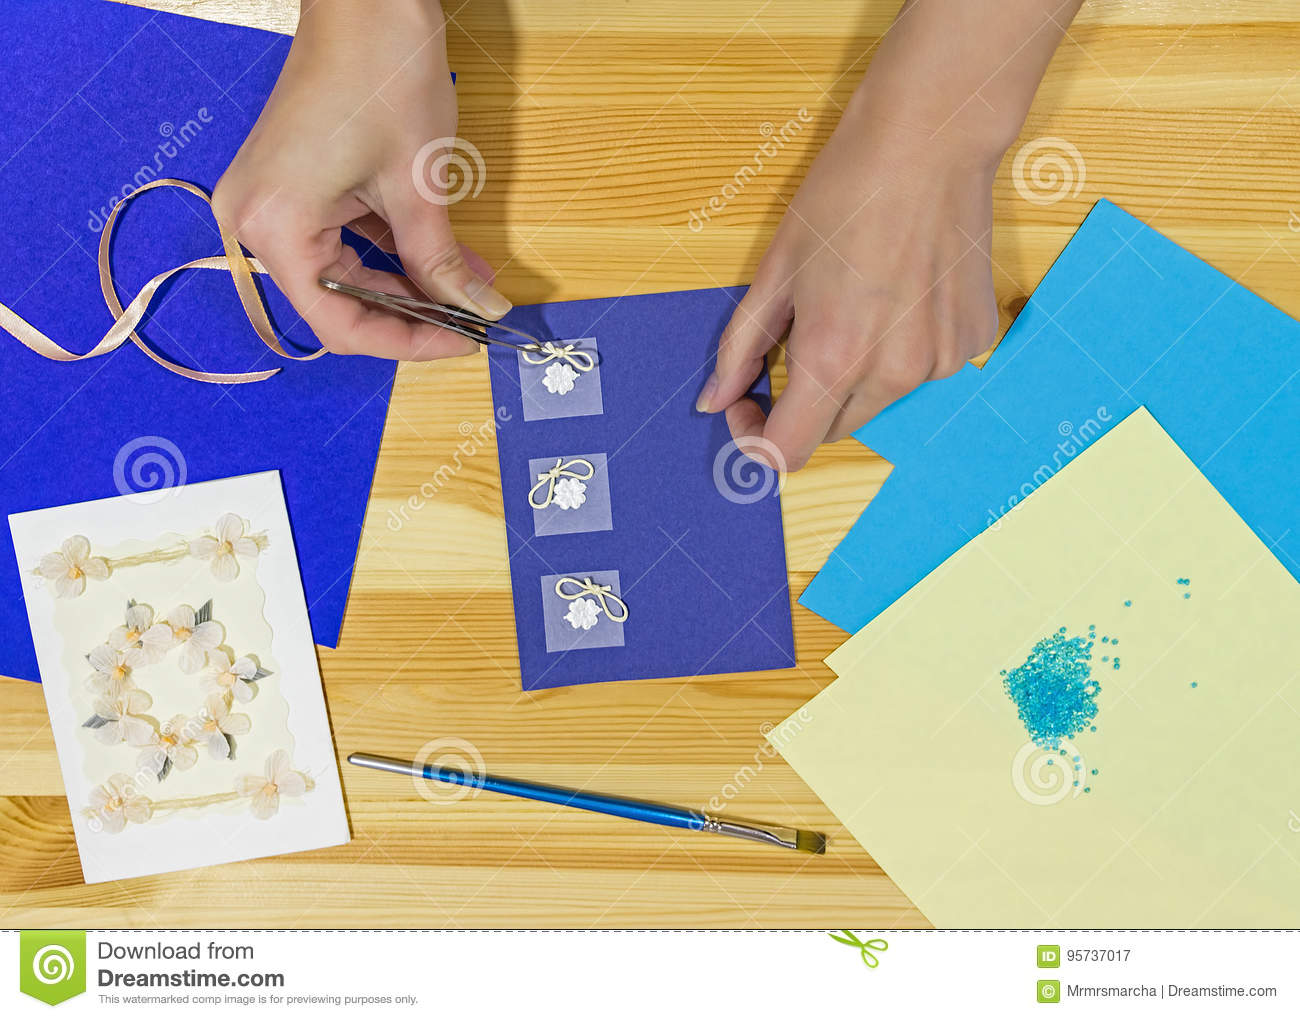 Craft greeting card income from hobbies home business stock image craft greeting card income from hobbies home business m4hsunfo